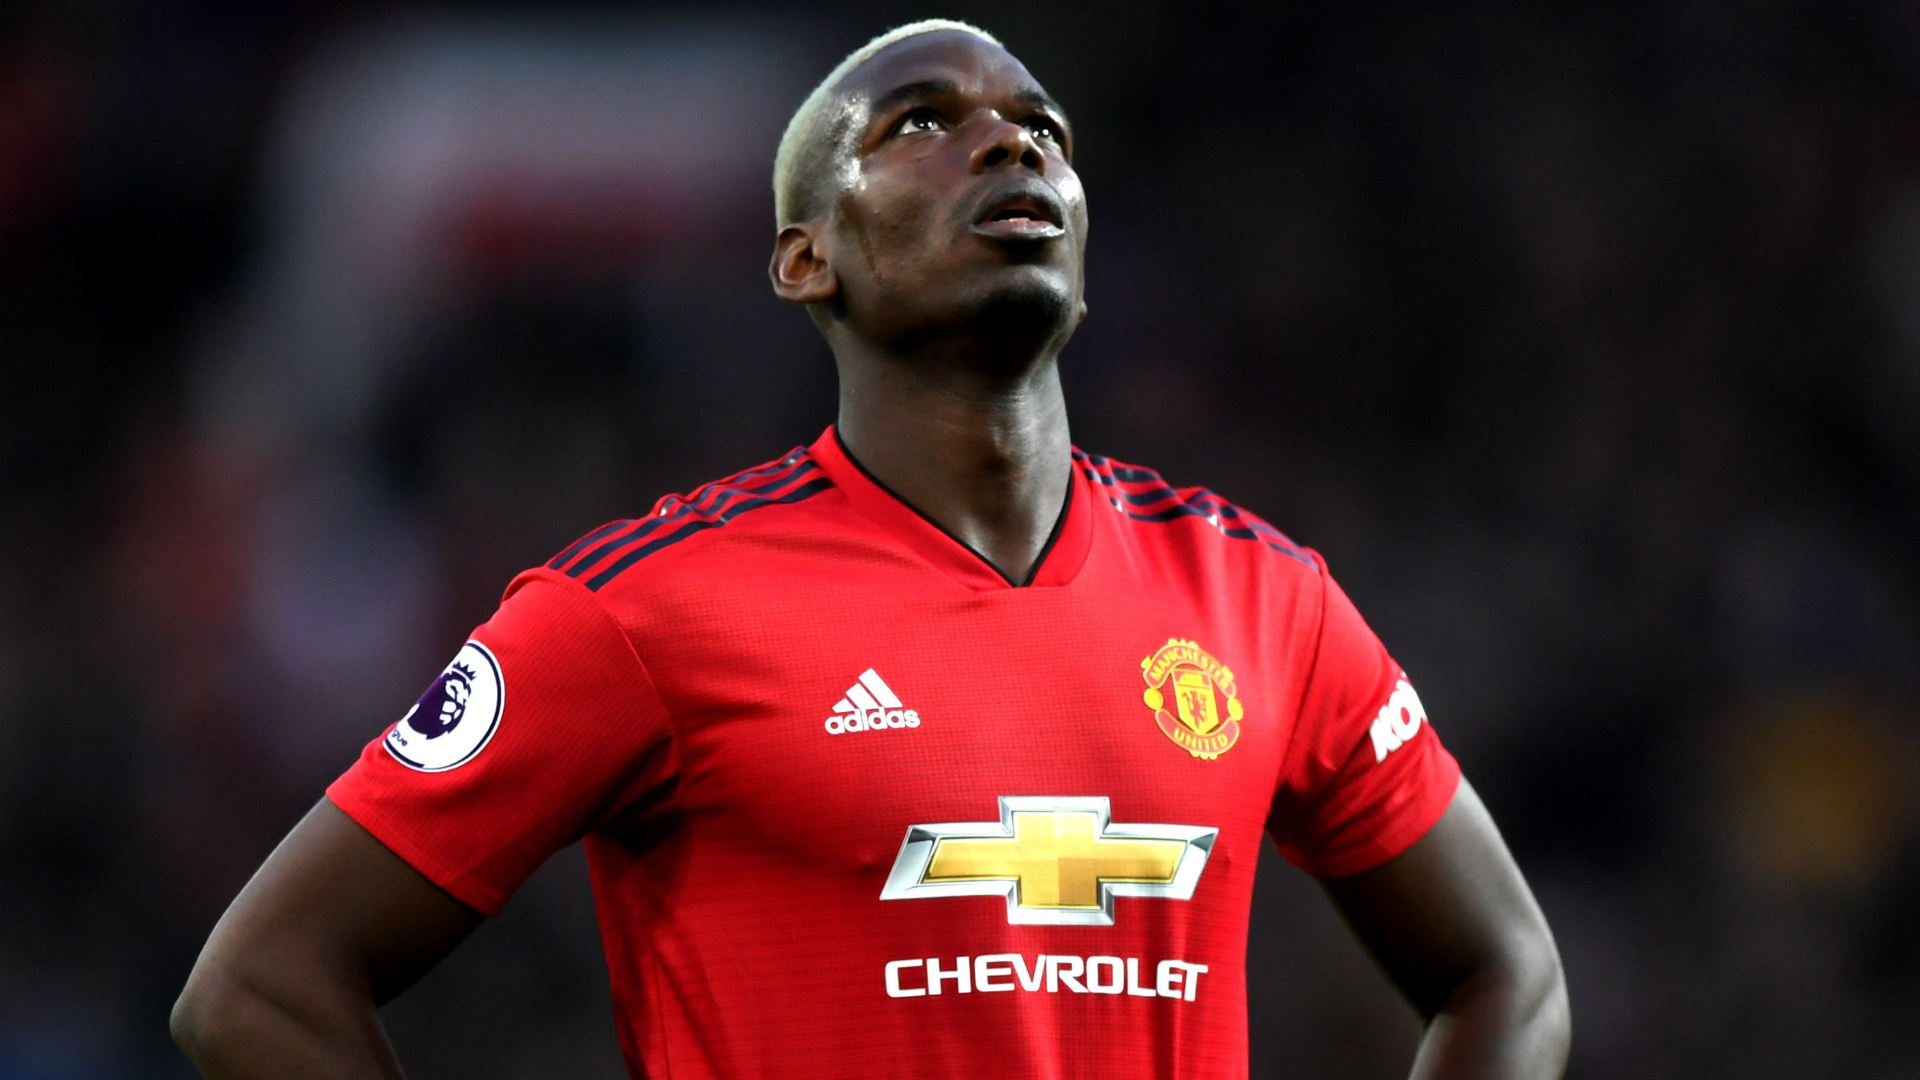 Keane on Pogba: I wouldn't believe a word he says